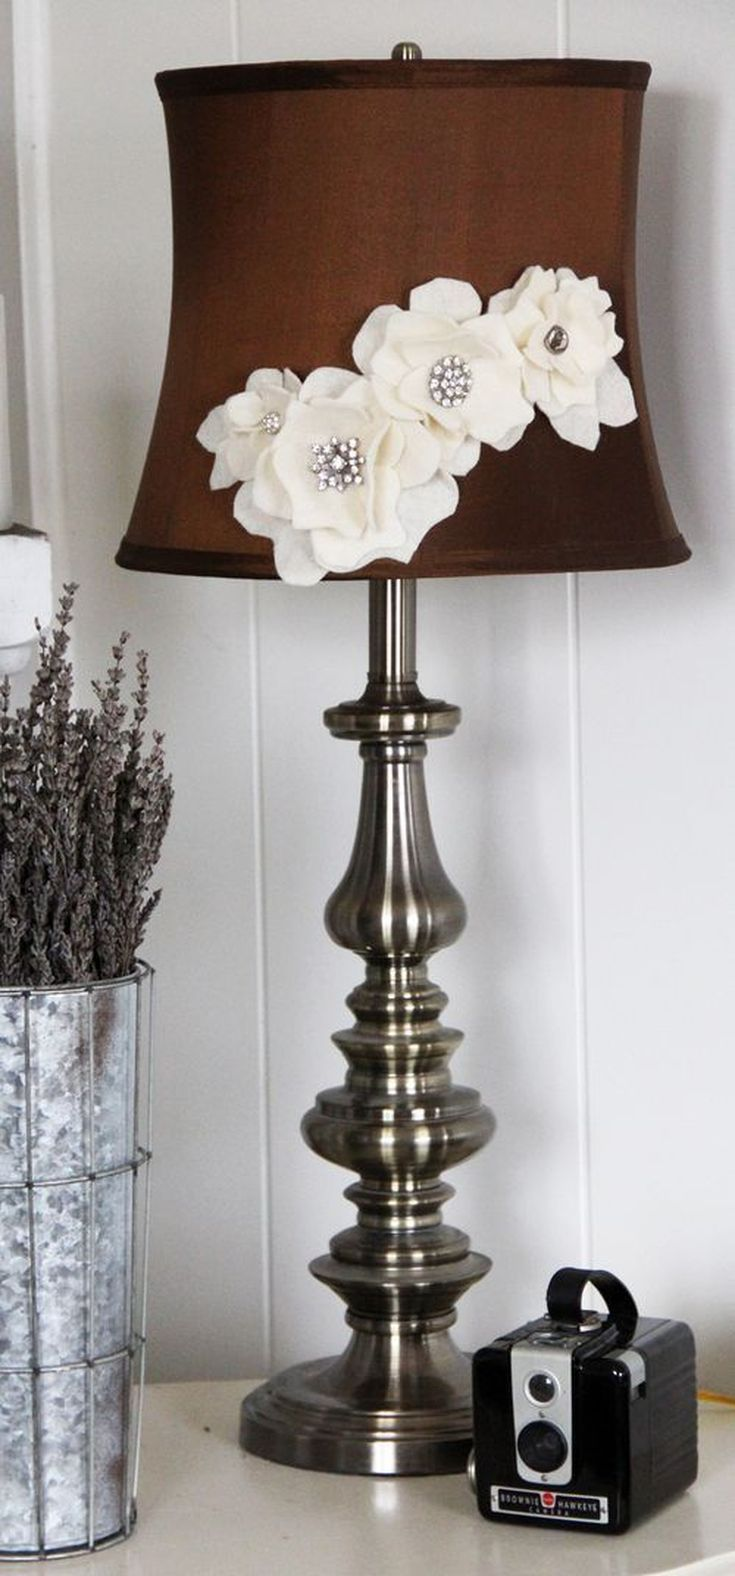 72 best Lampshades images on Pinterest | Lampshades, Lampshade ...